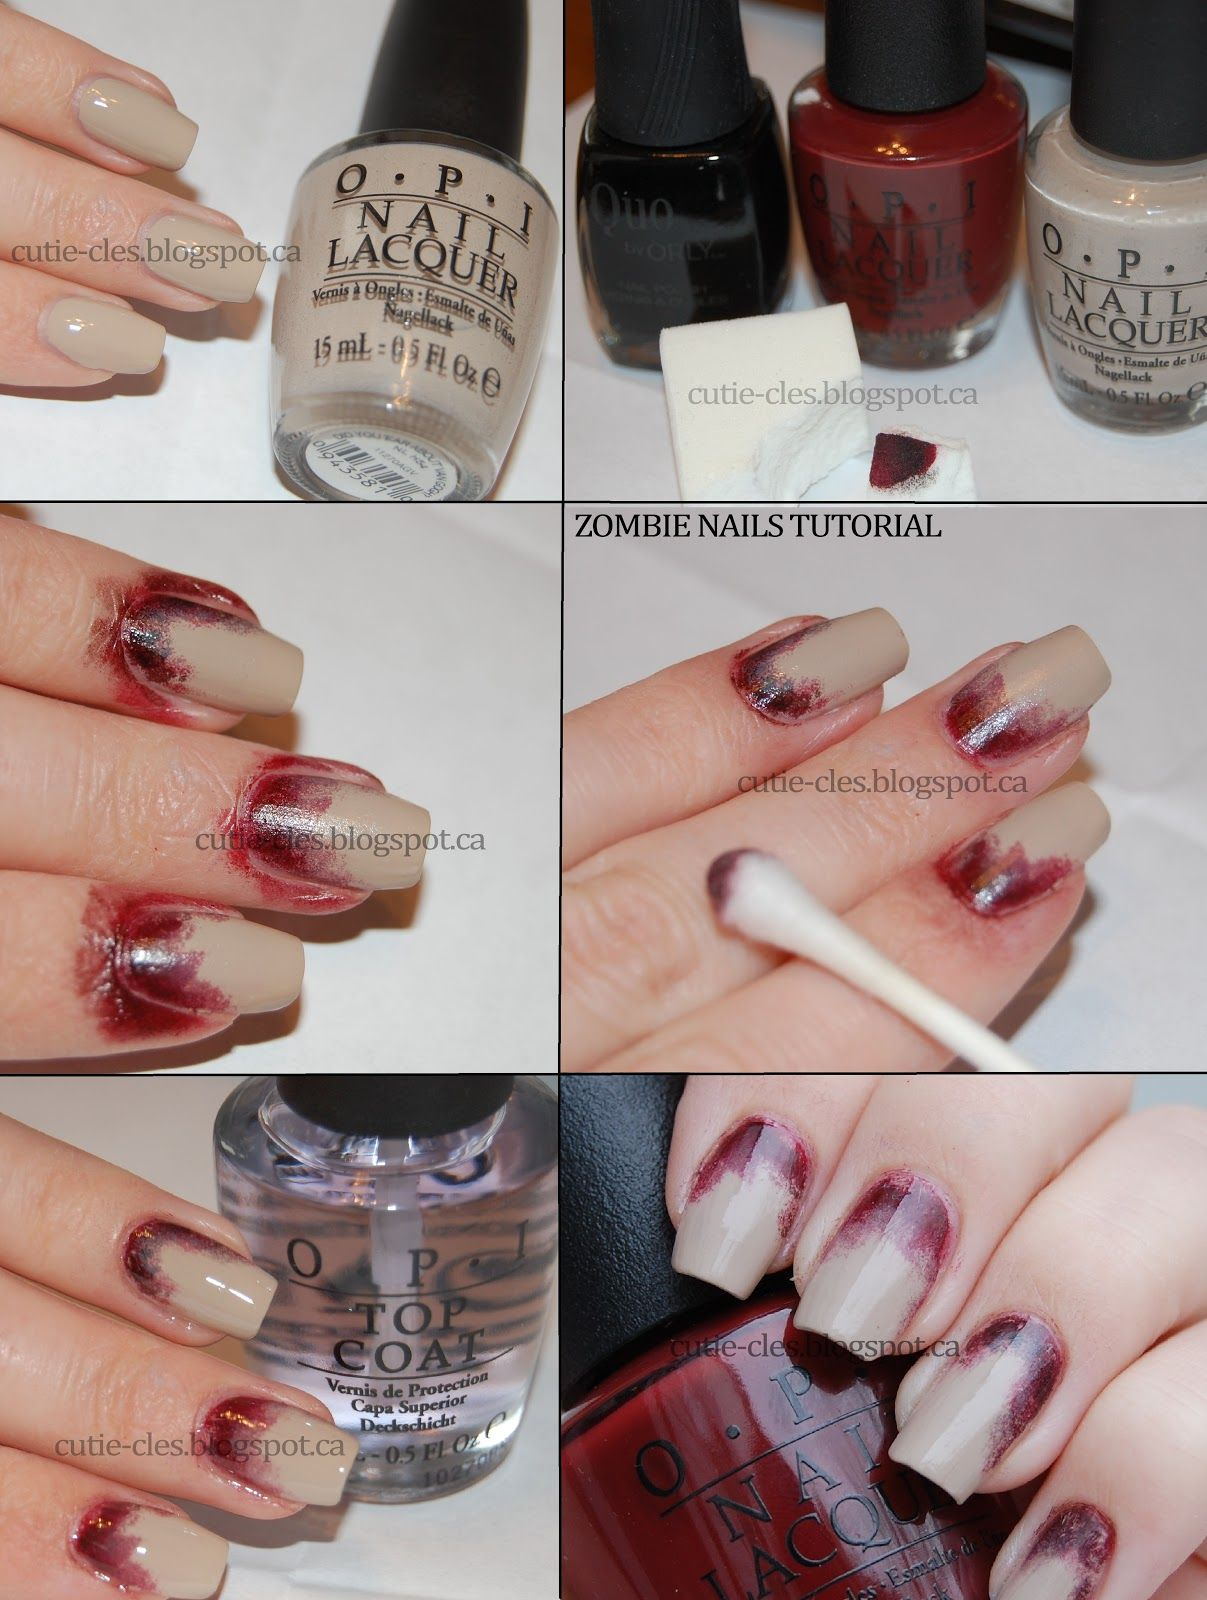 Tutorial for zombie nails | Costume inspirations | Pinterest ...